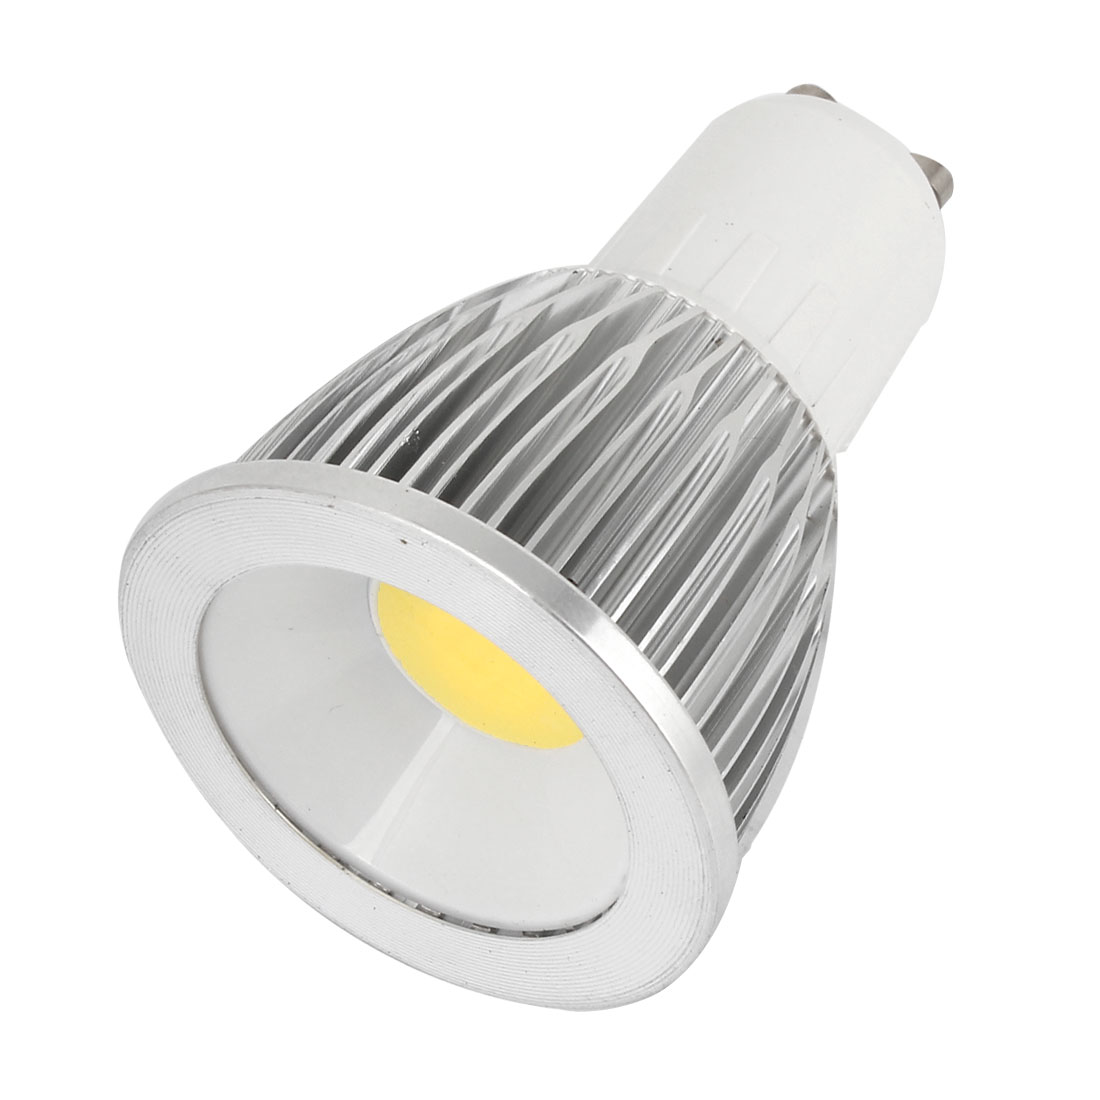 AC 85-265V 9W GU10 Non-dimmable White Light COB LED Downlight Spotlight Bulb